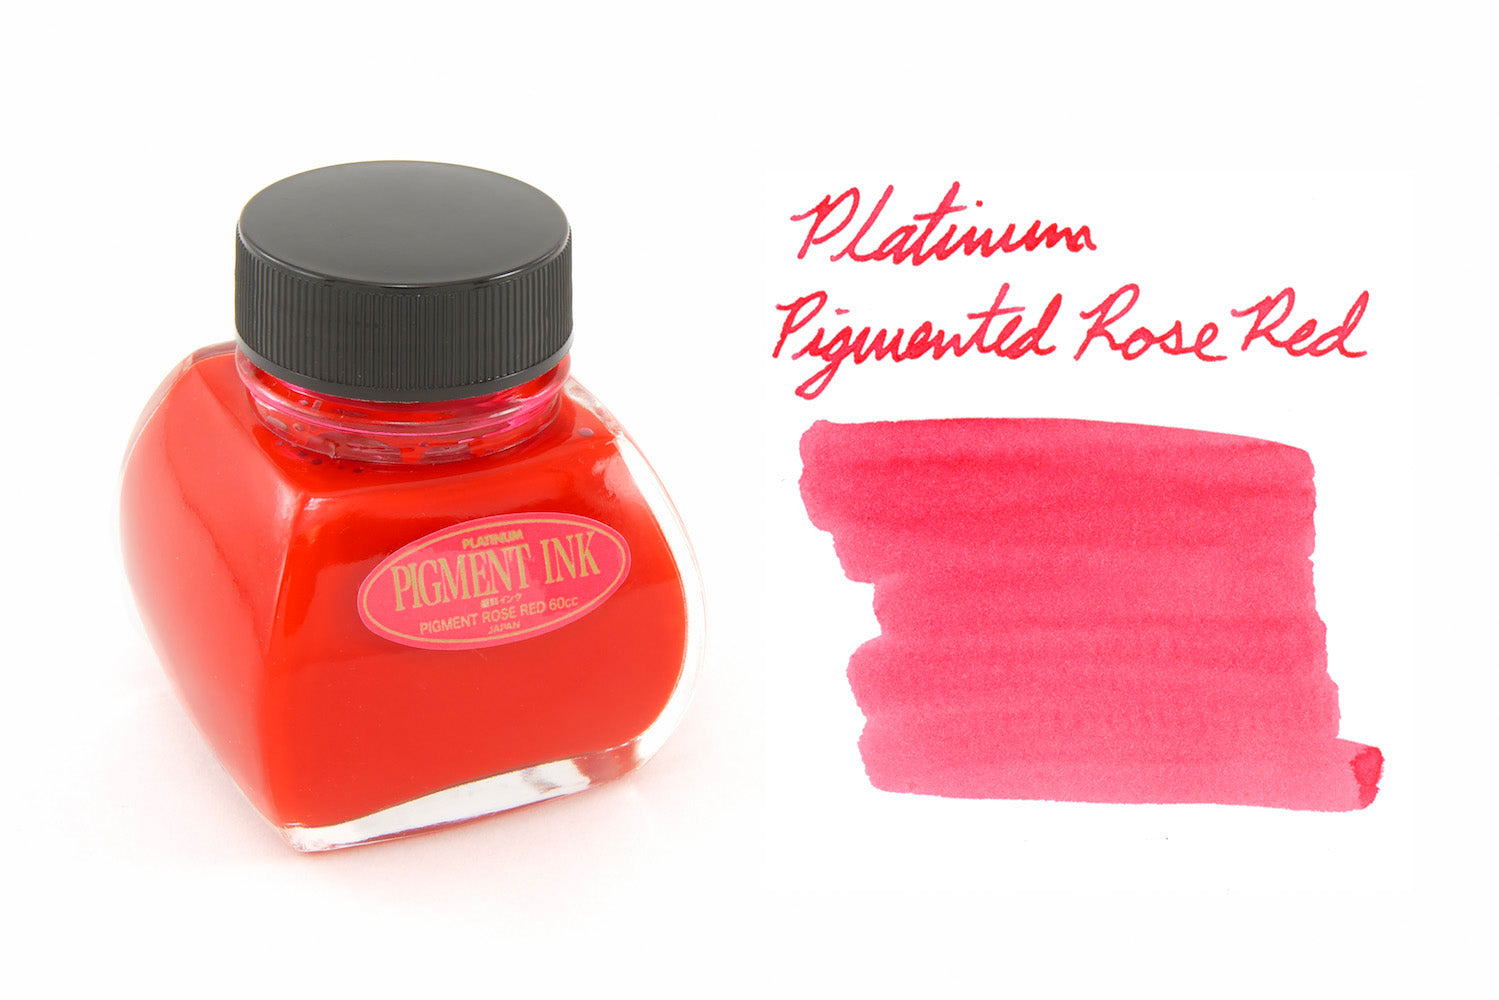 Platinum Pigmented Rose Red - 60ml Bottled Ink